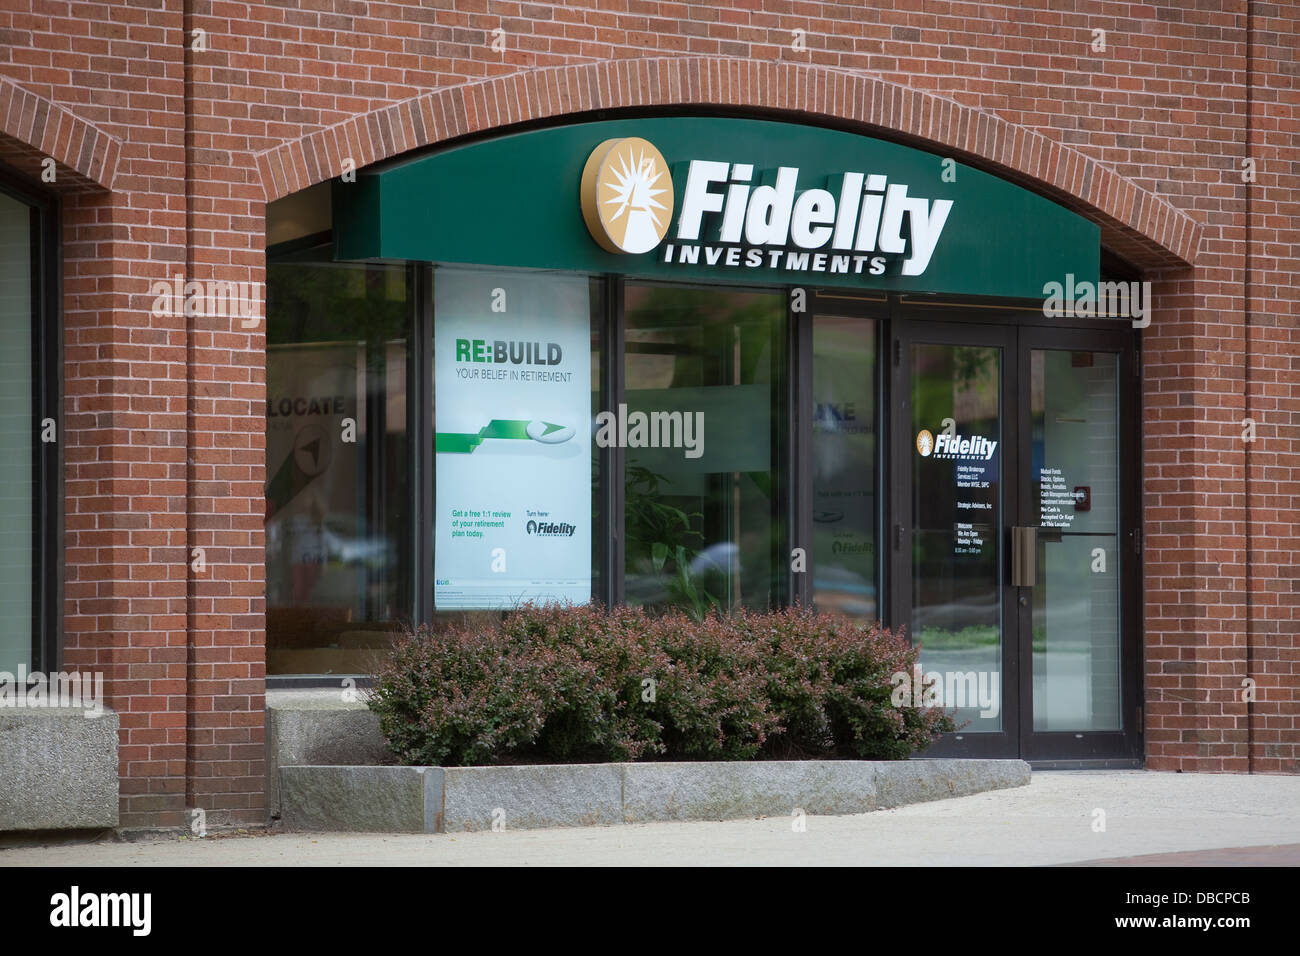 A Fidelity Investment branch is pictured in Portland, Maine - Stock Image